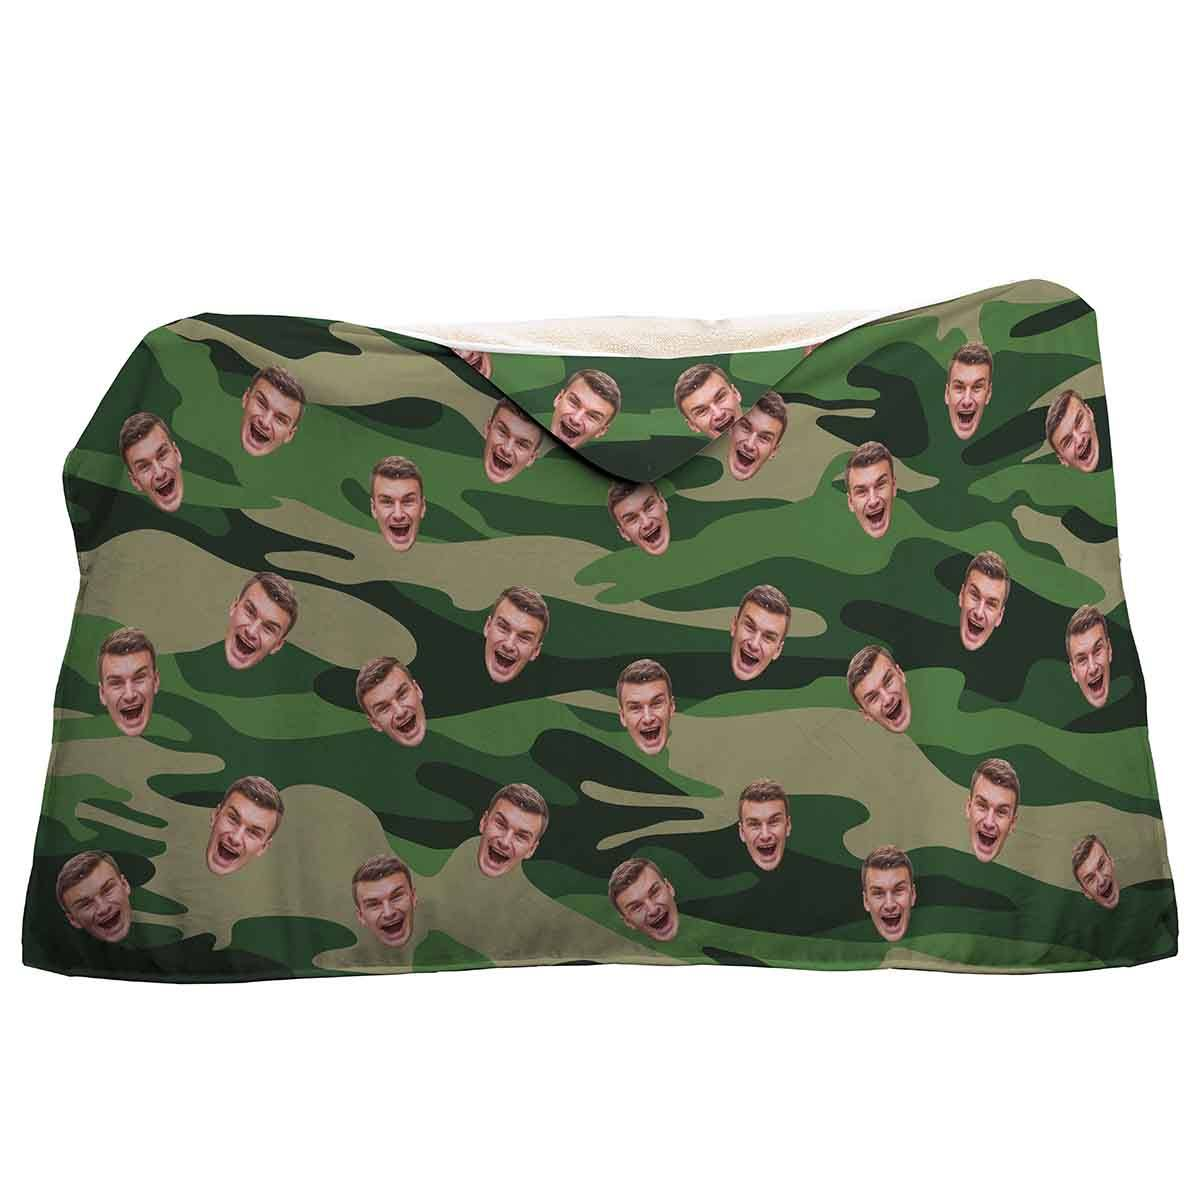 military Military hooded blanket personalized with photo of face printed on it